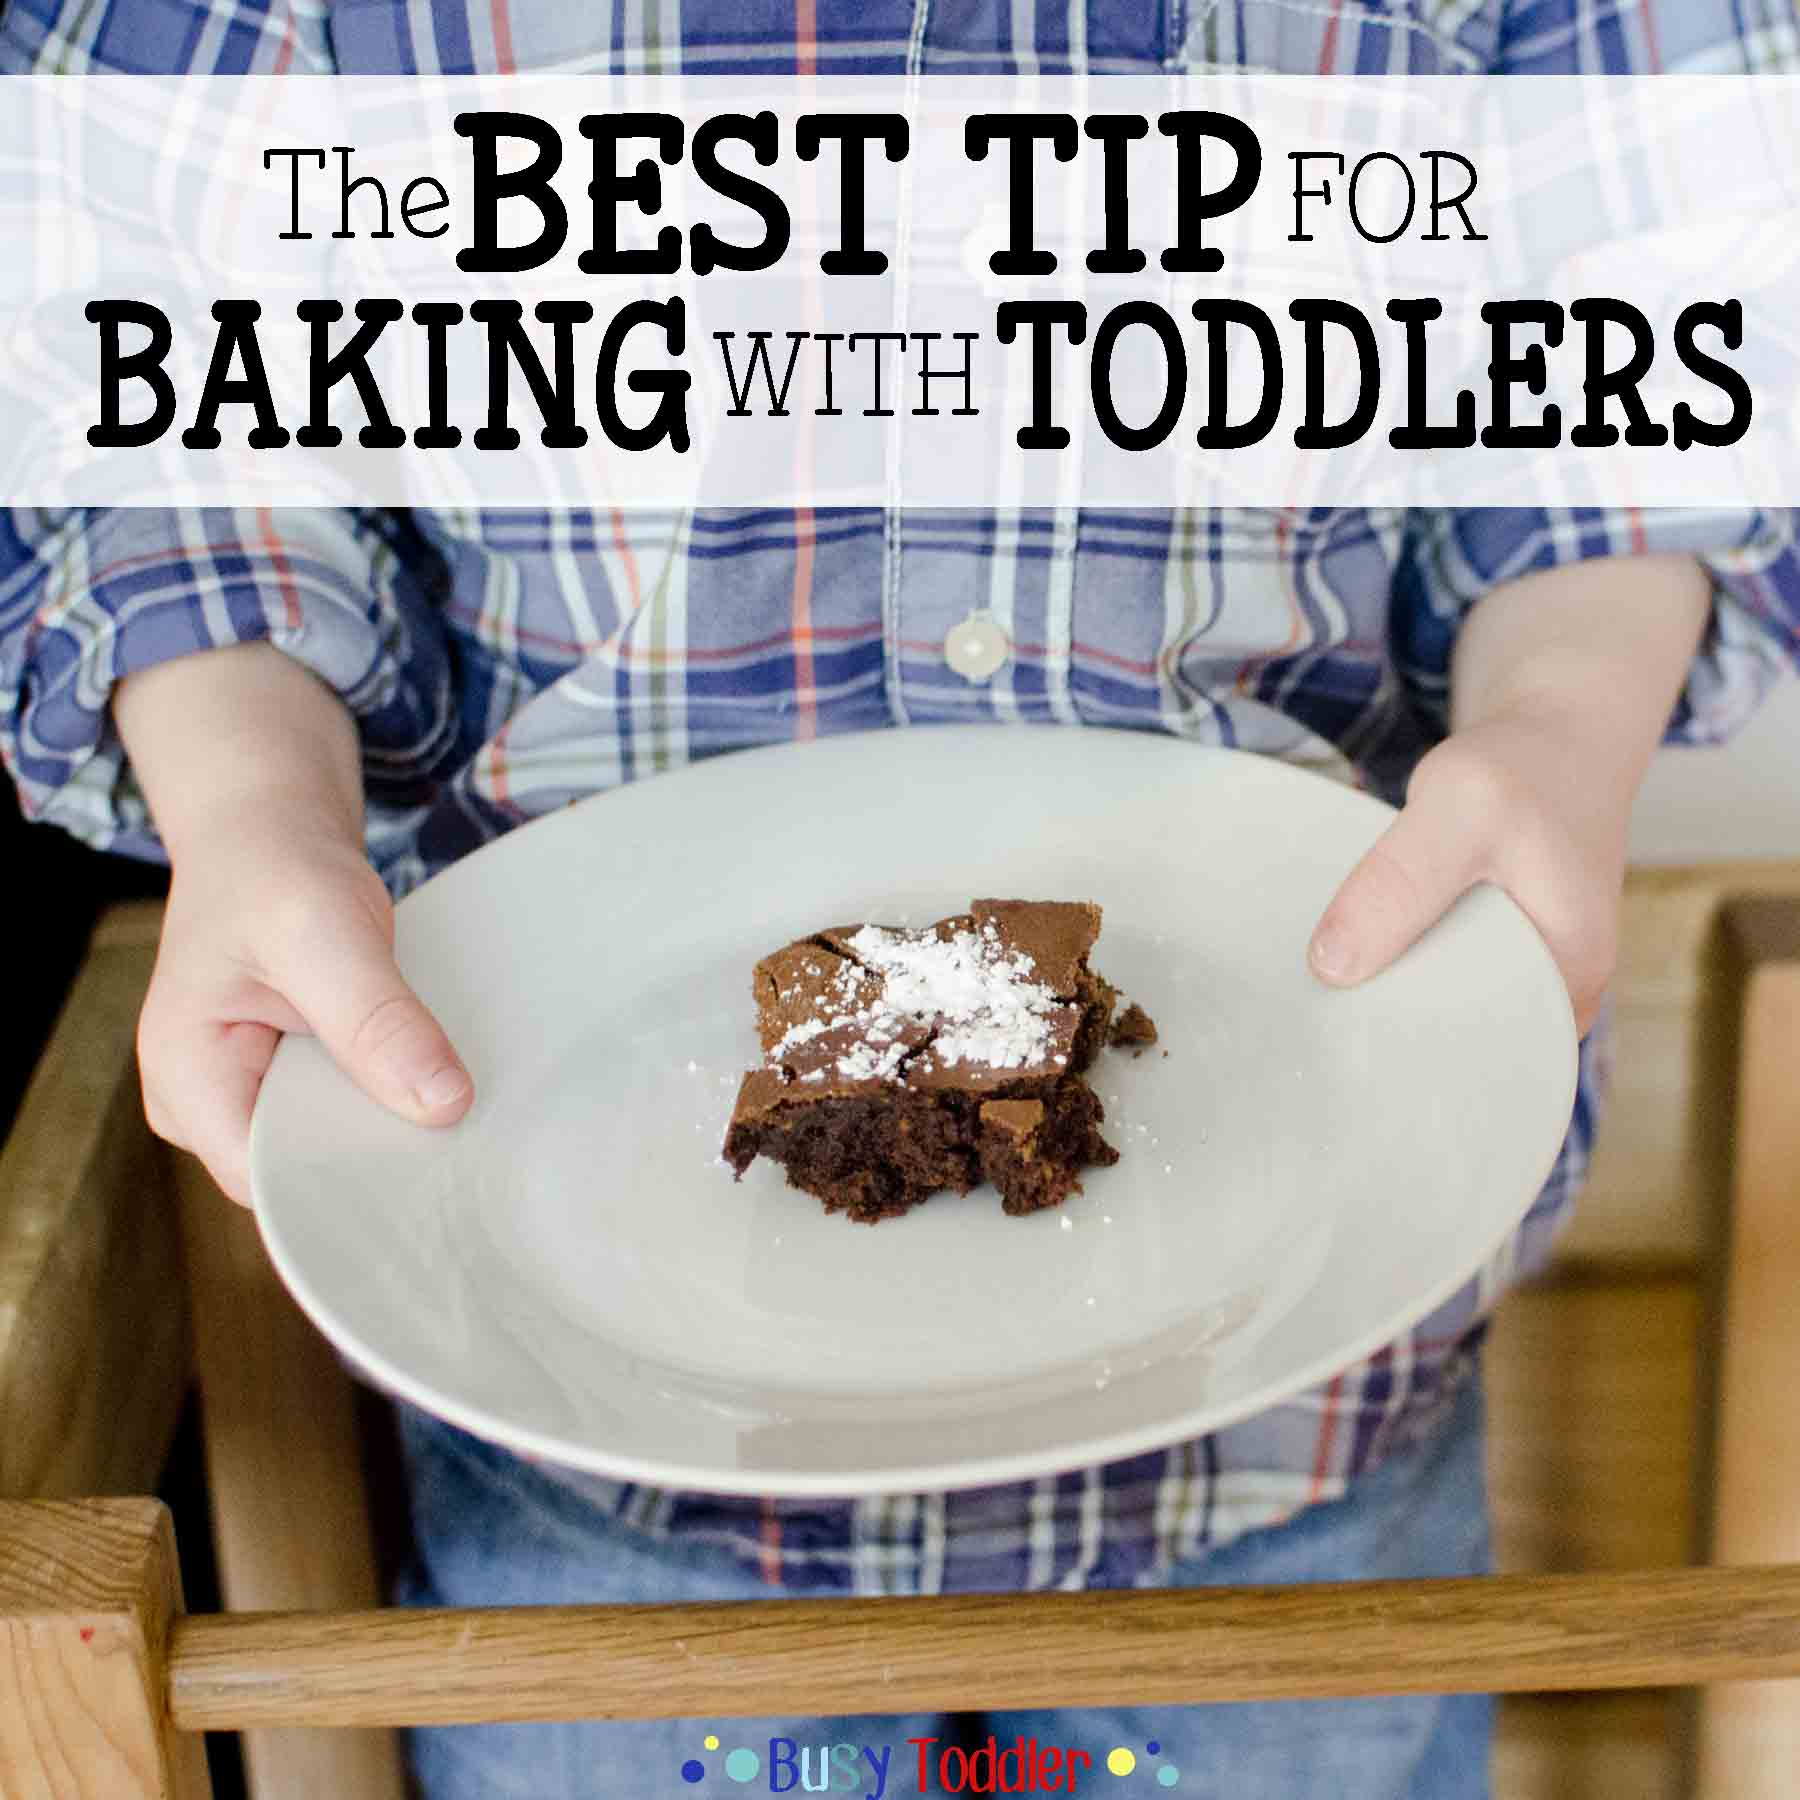 The Best Tip for Baking with Toddlers